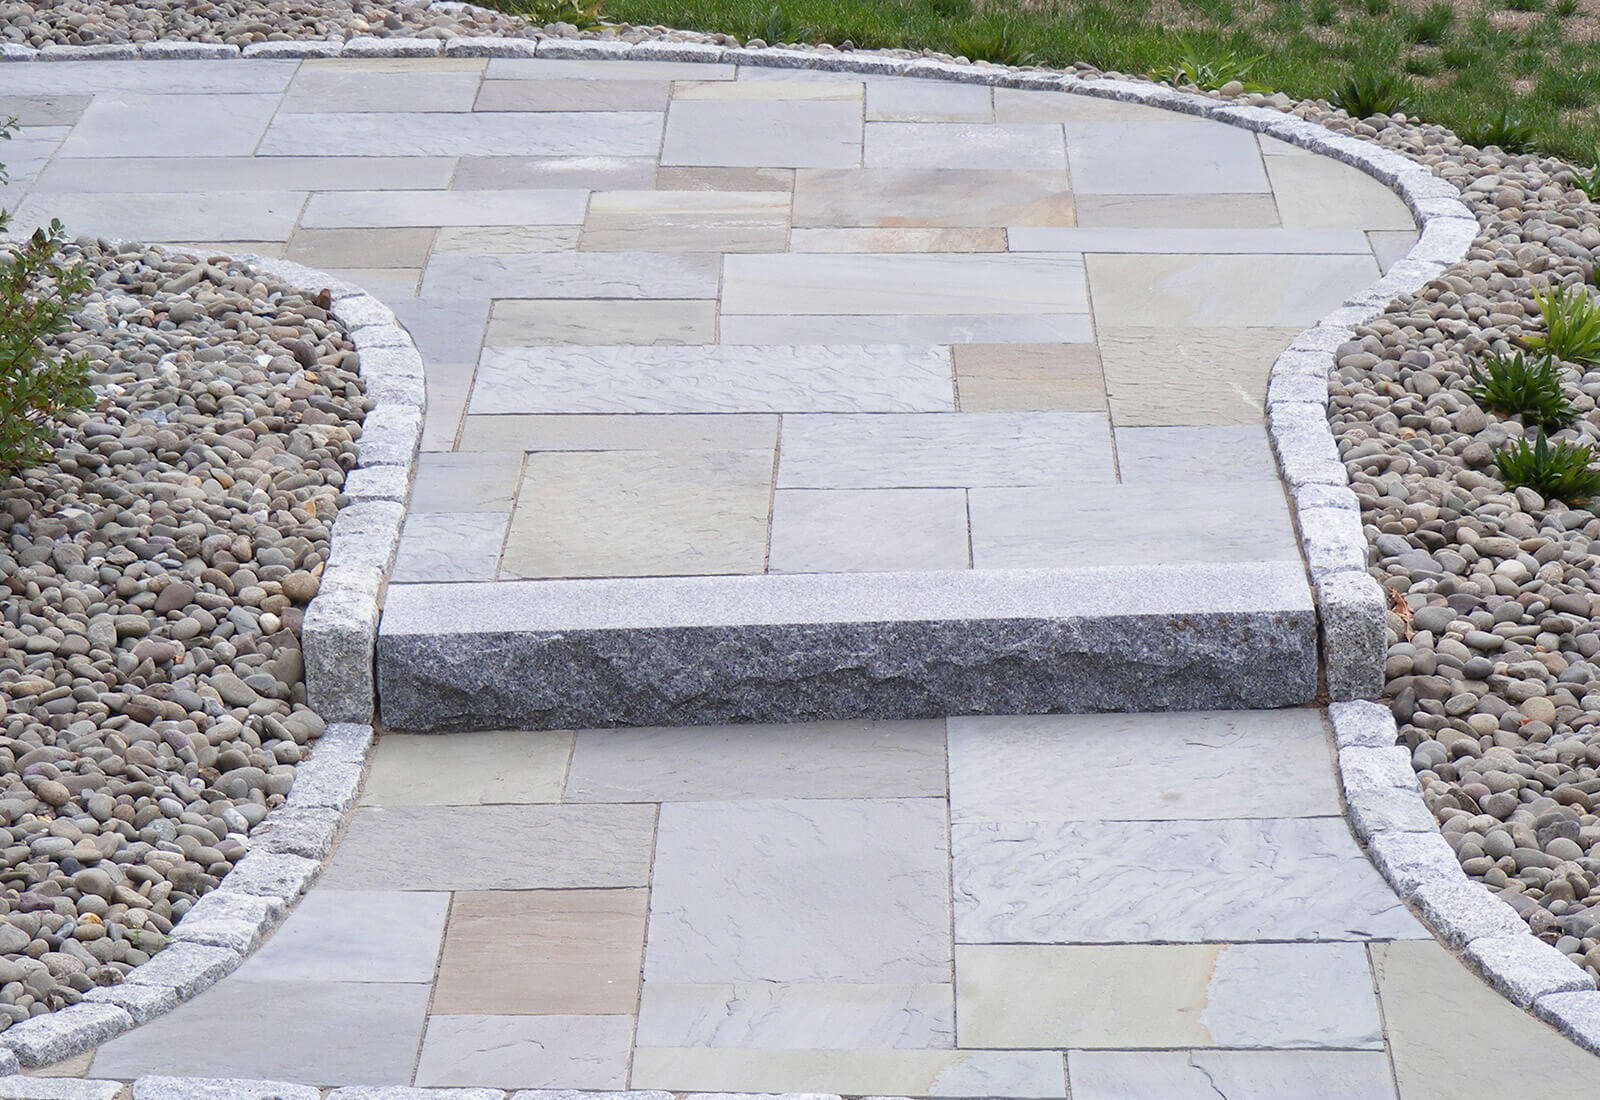 Spacer Walkways U0026 Patios   Swenson Granite Zoom. Stone: Bluestone